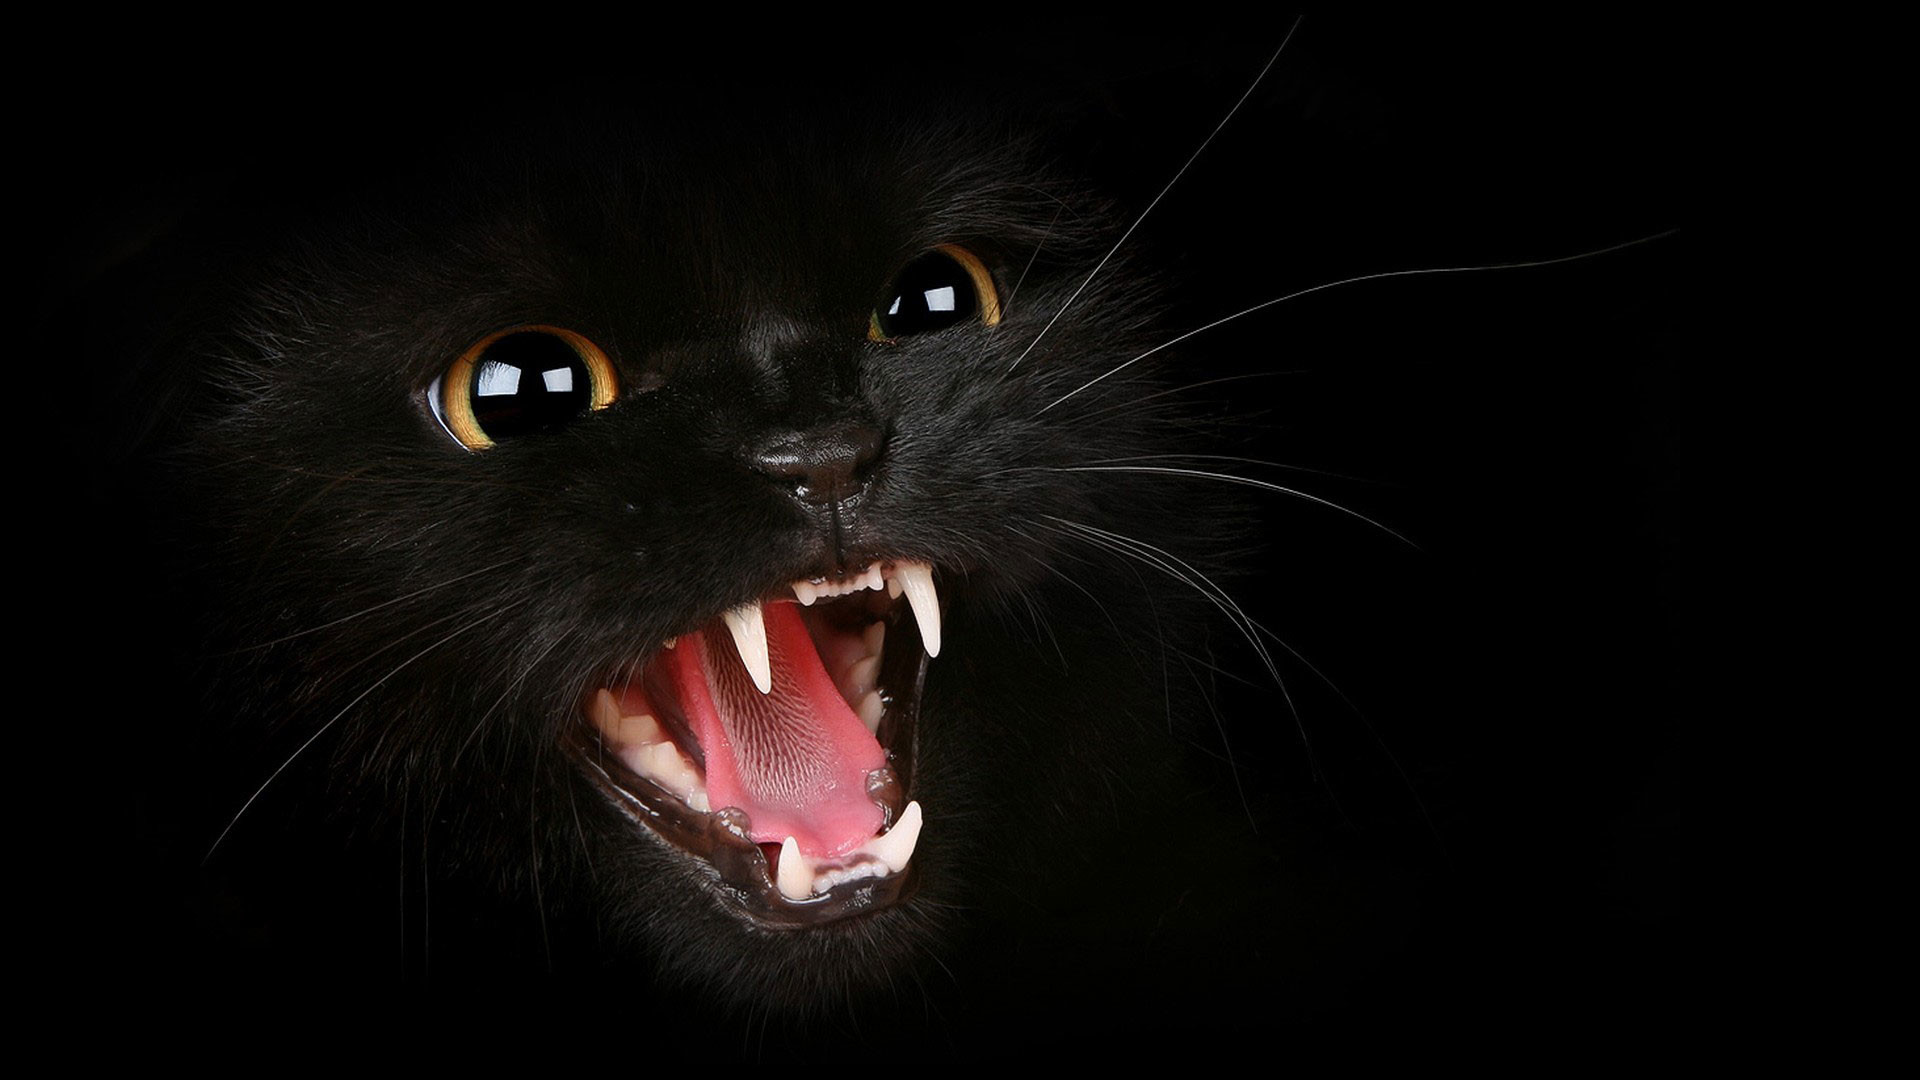 … angry black cat hd quality desktop background wallpaper 1080p …